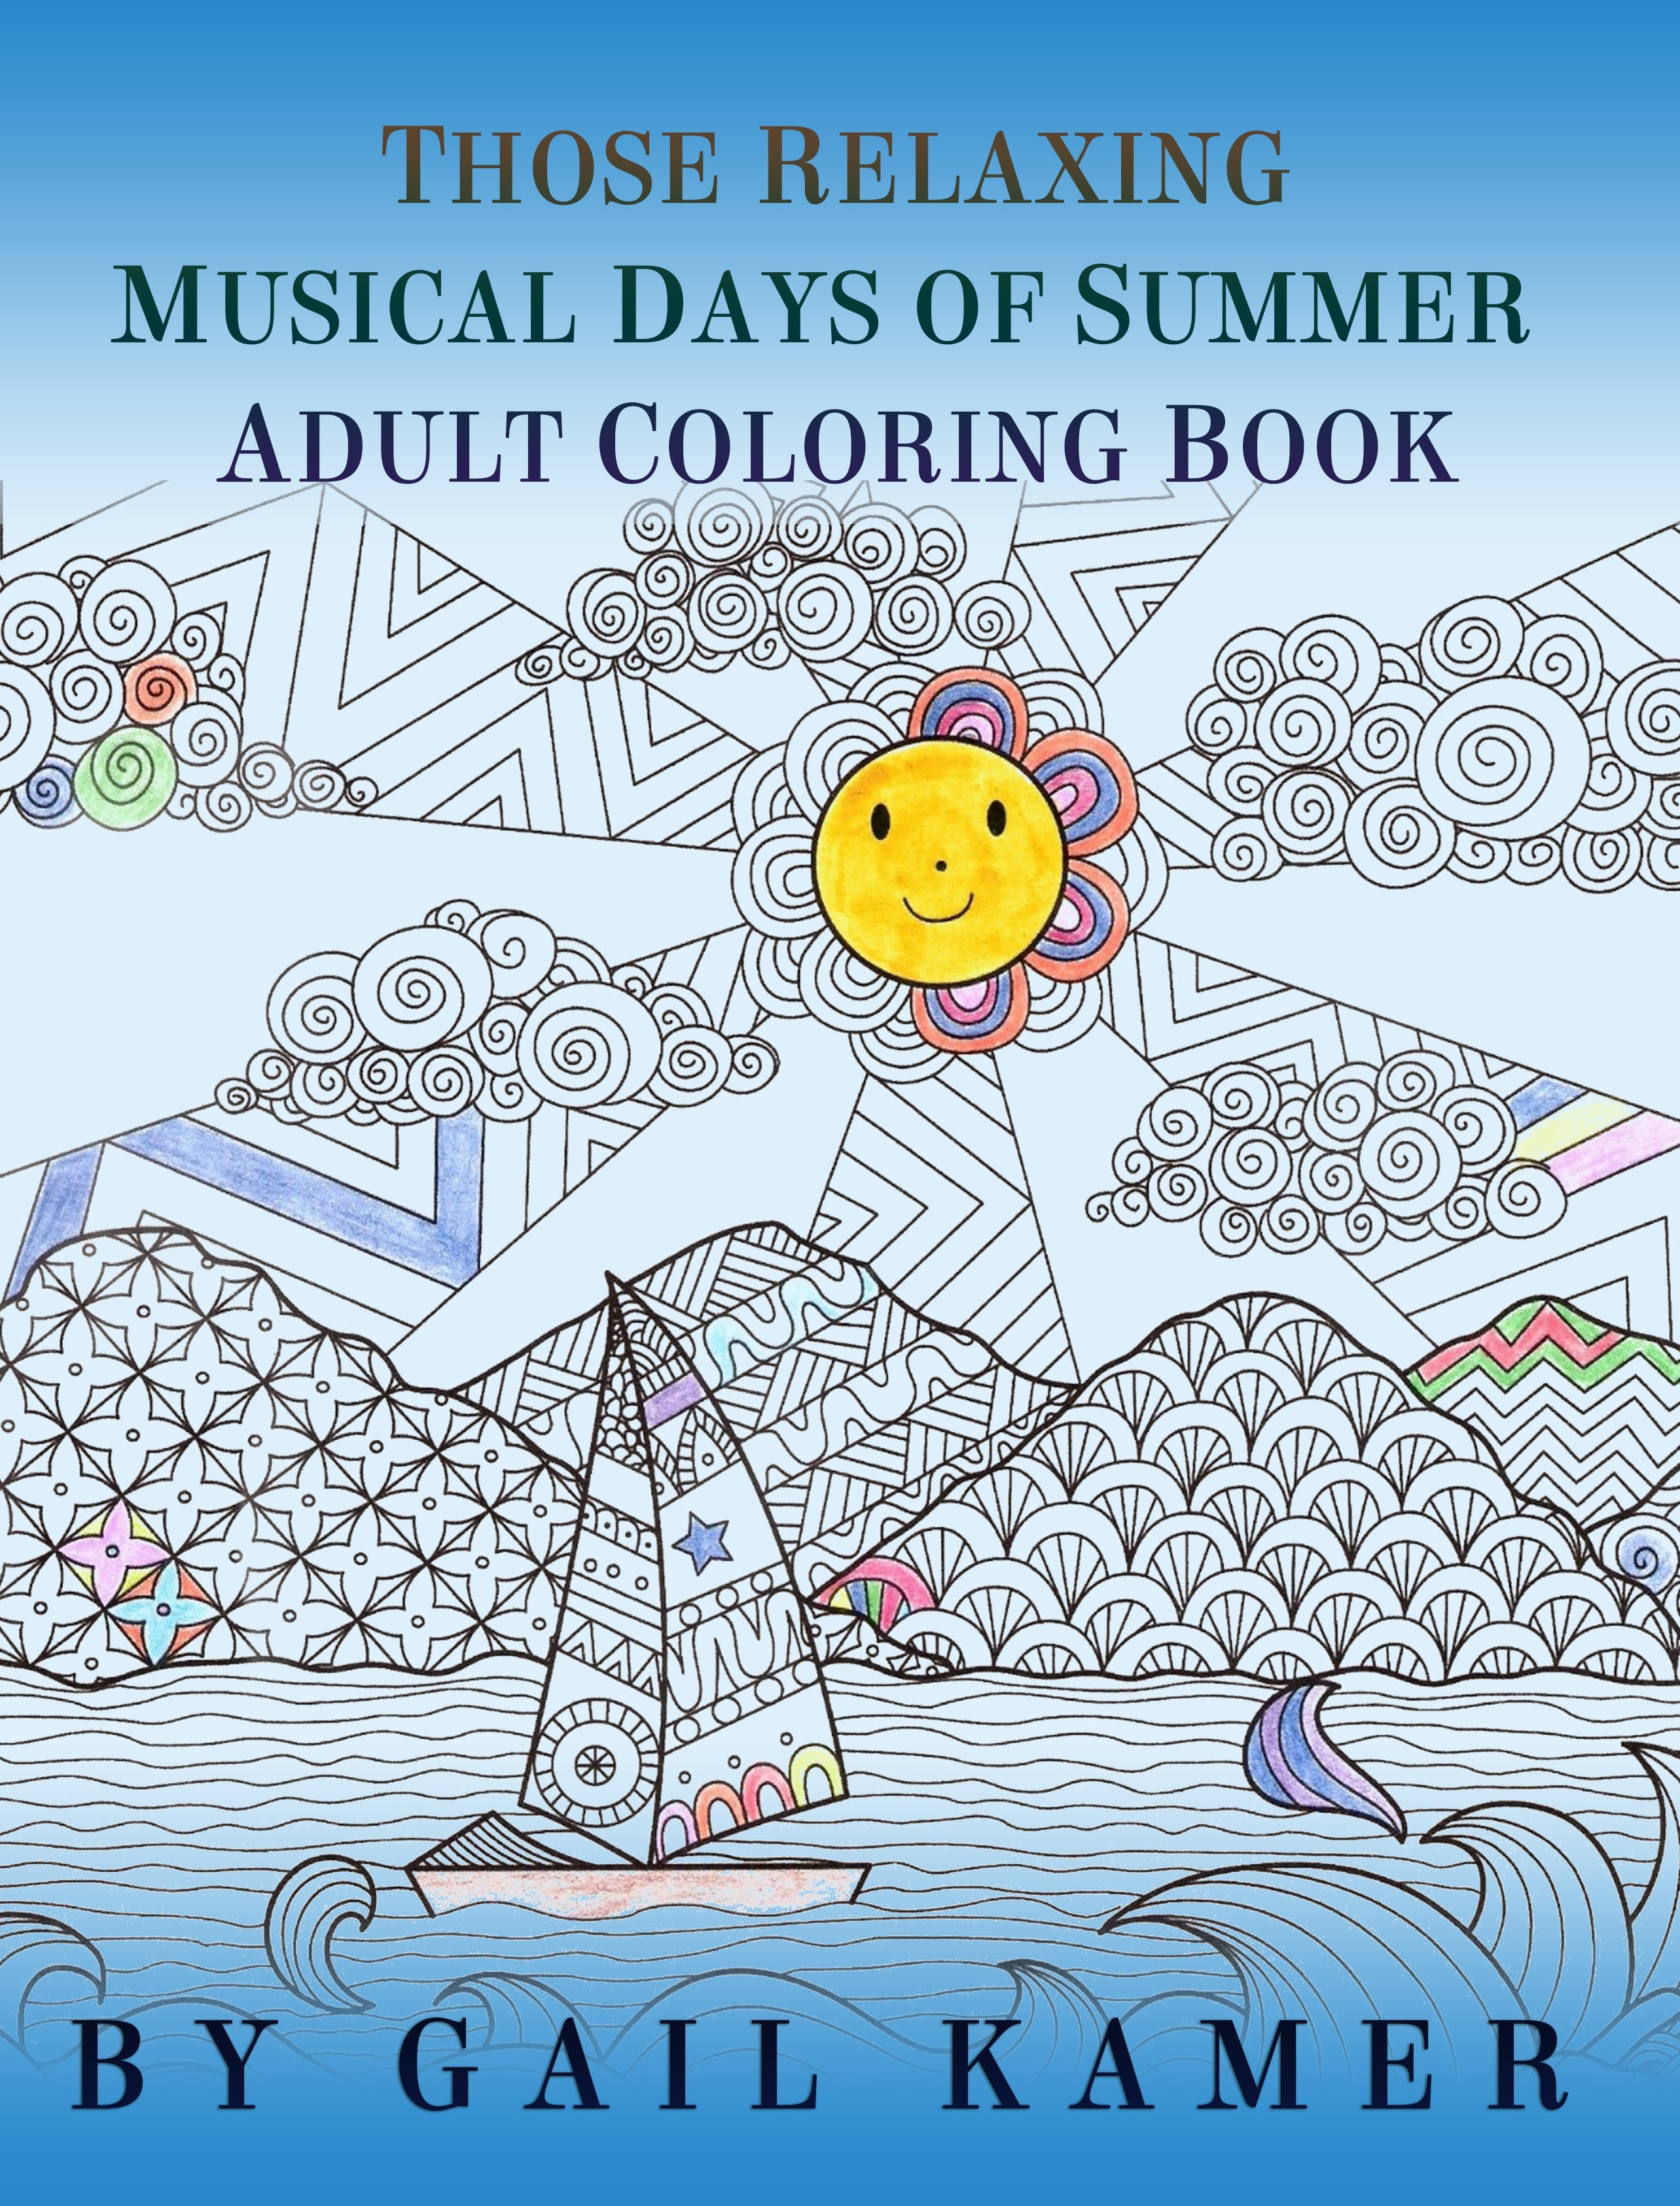 Those Relaxing Musical Days of Summer Adult Coloring Book